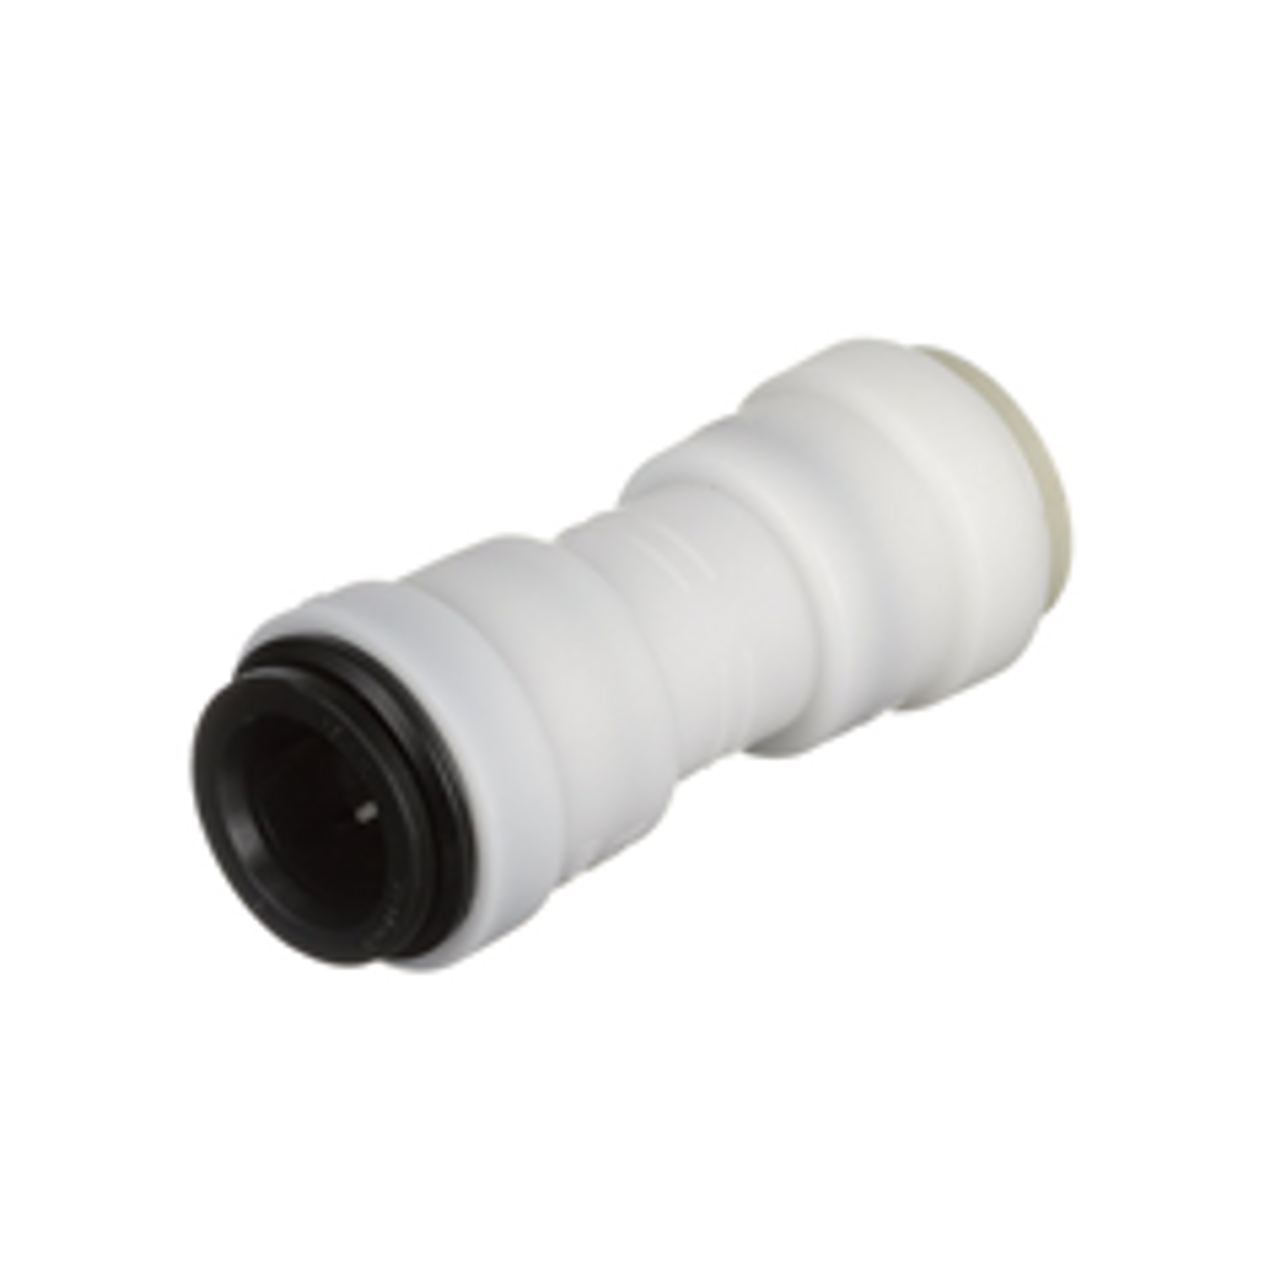 """½"""" CTS x 15mm reducing union 1116-1015"""